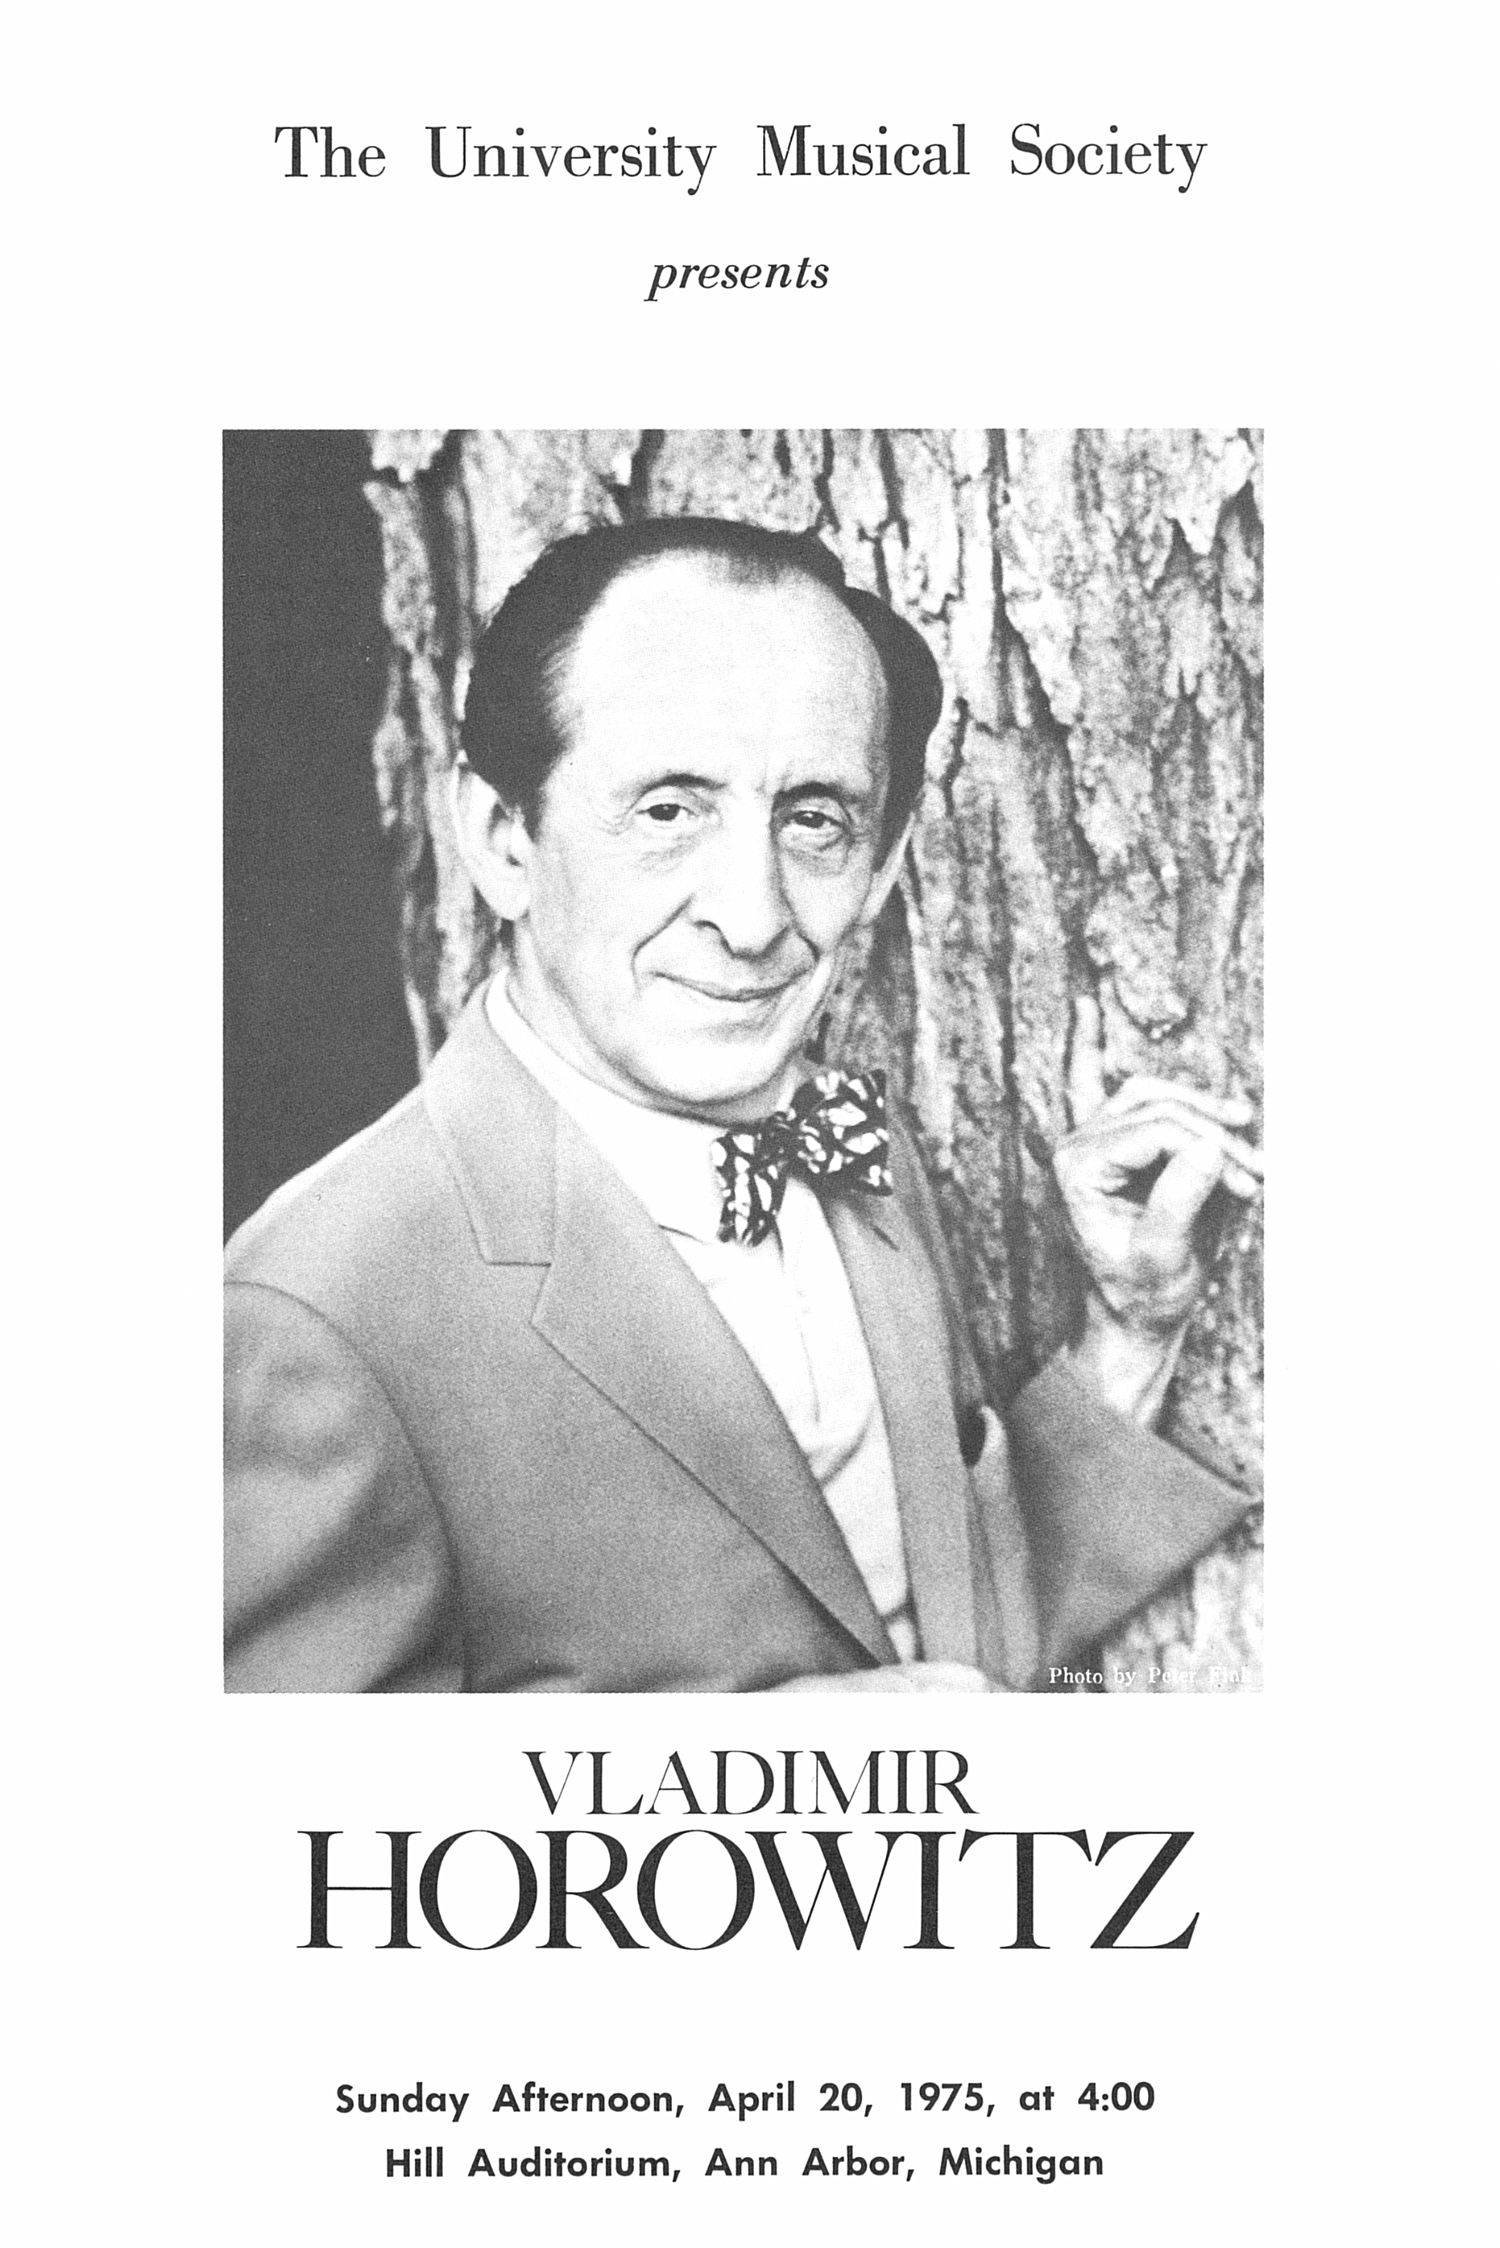 UMS Concert Program, April 20, 1975: Vladimir Horowitz --  image